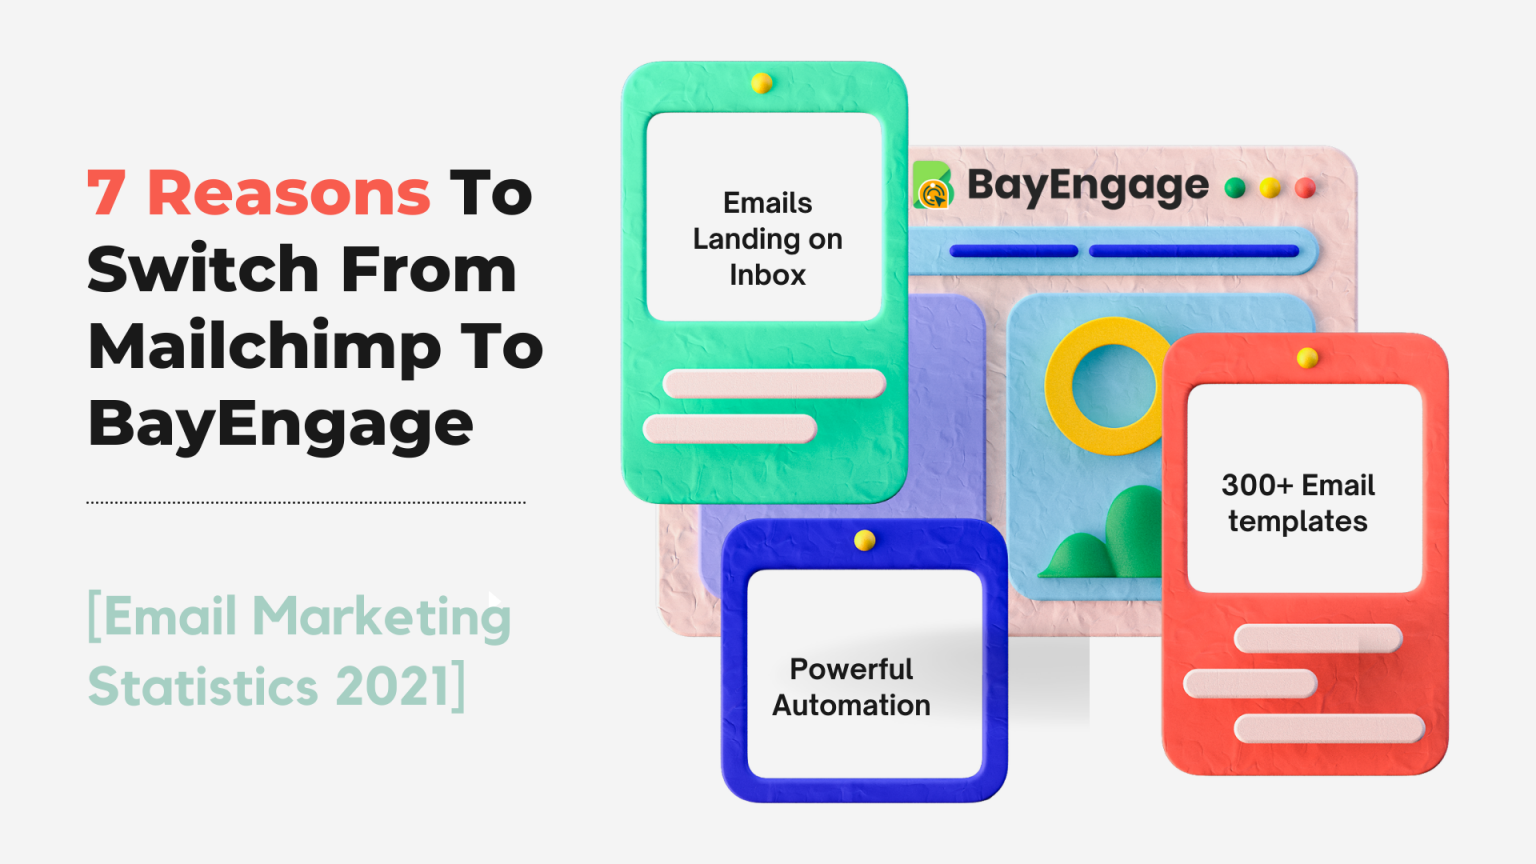 7 Reasons To Switch From Mailchimp To BayEngage [Email Marketing Statistics 2021]